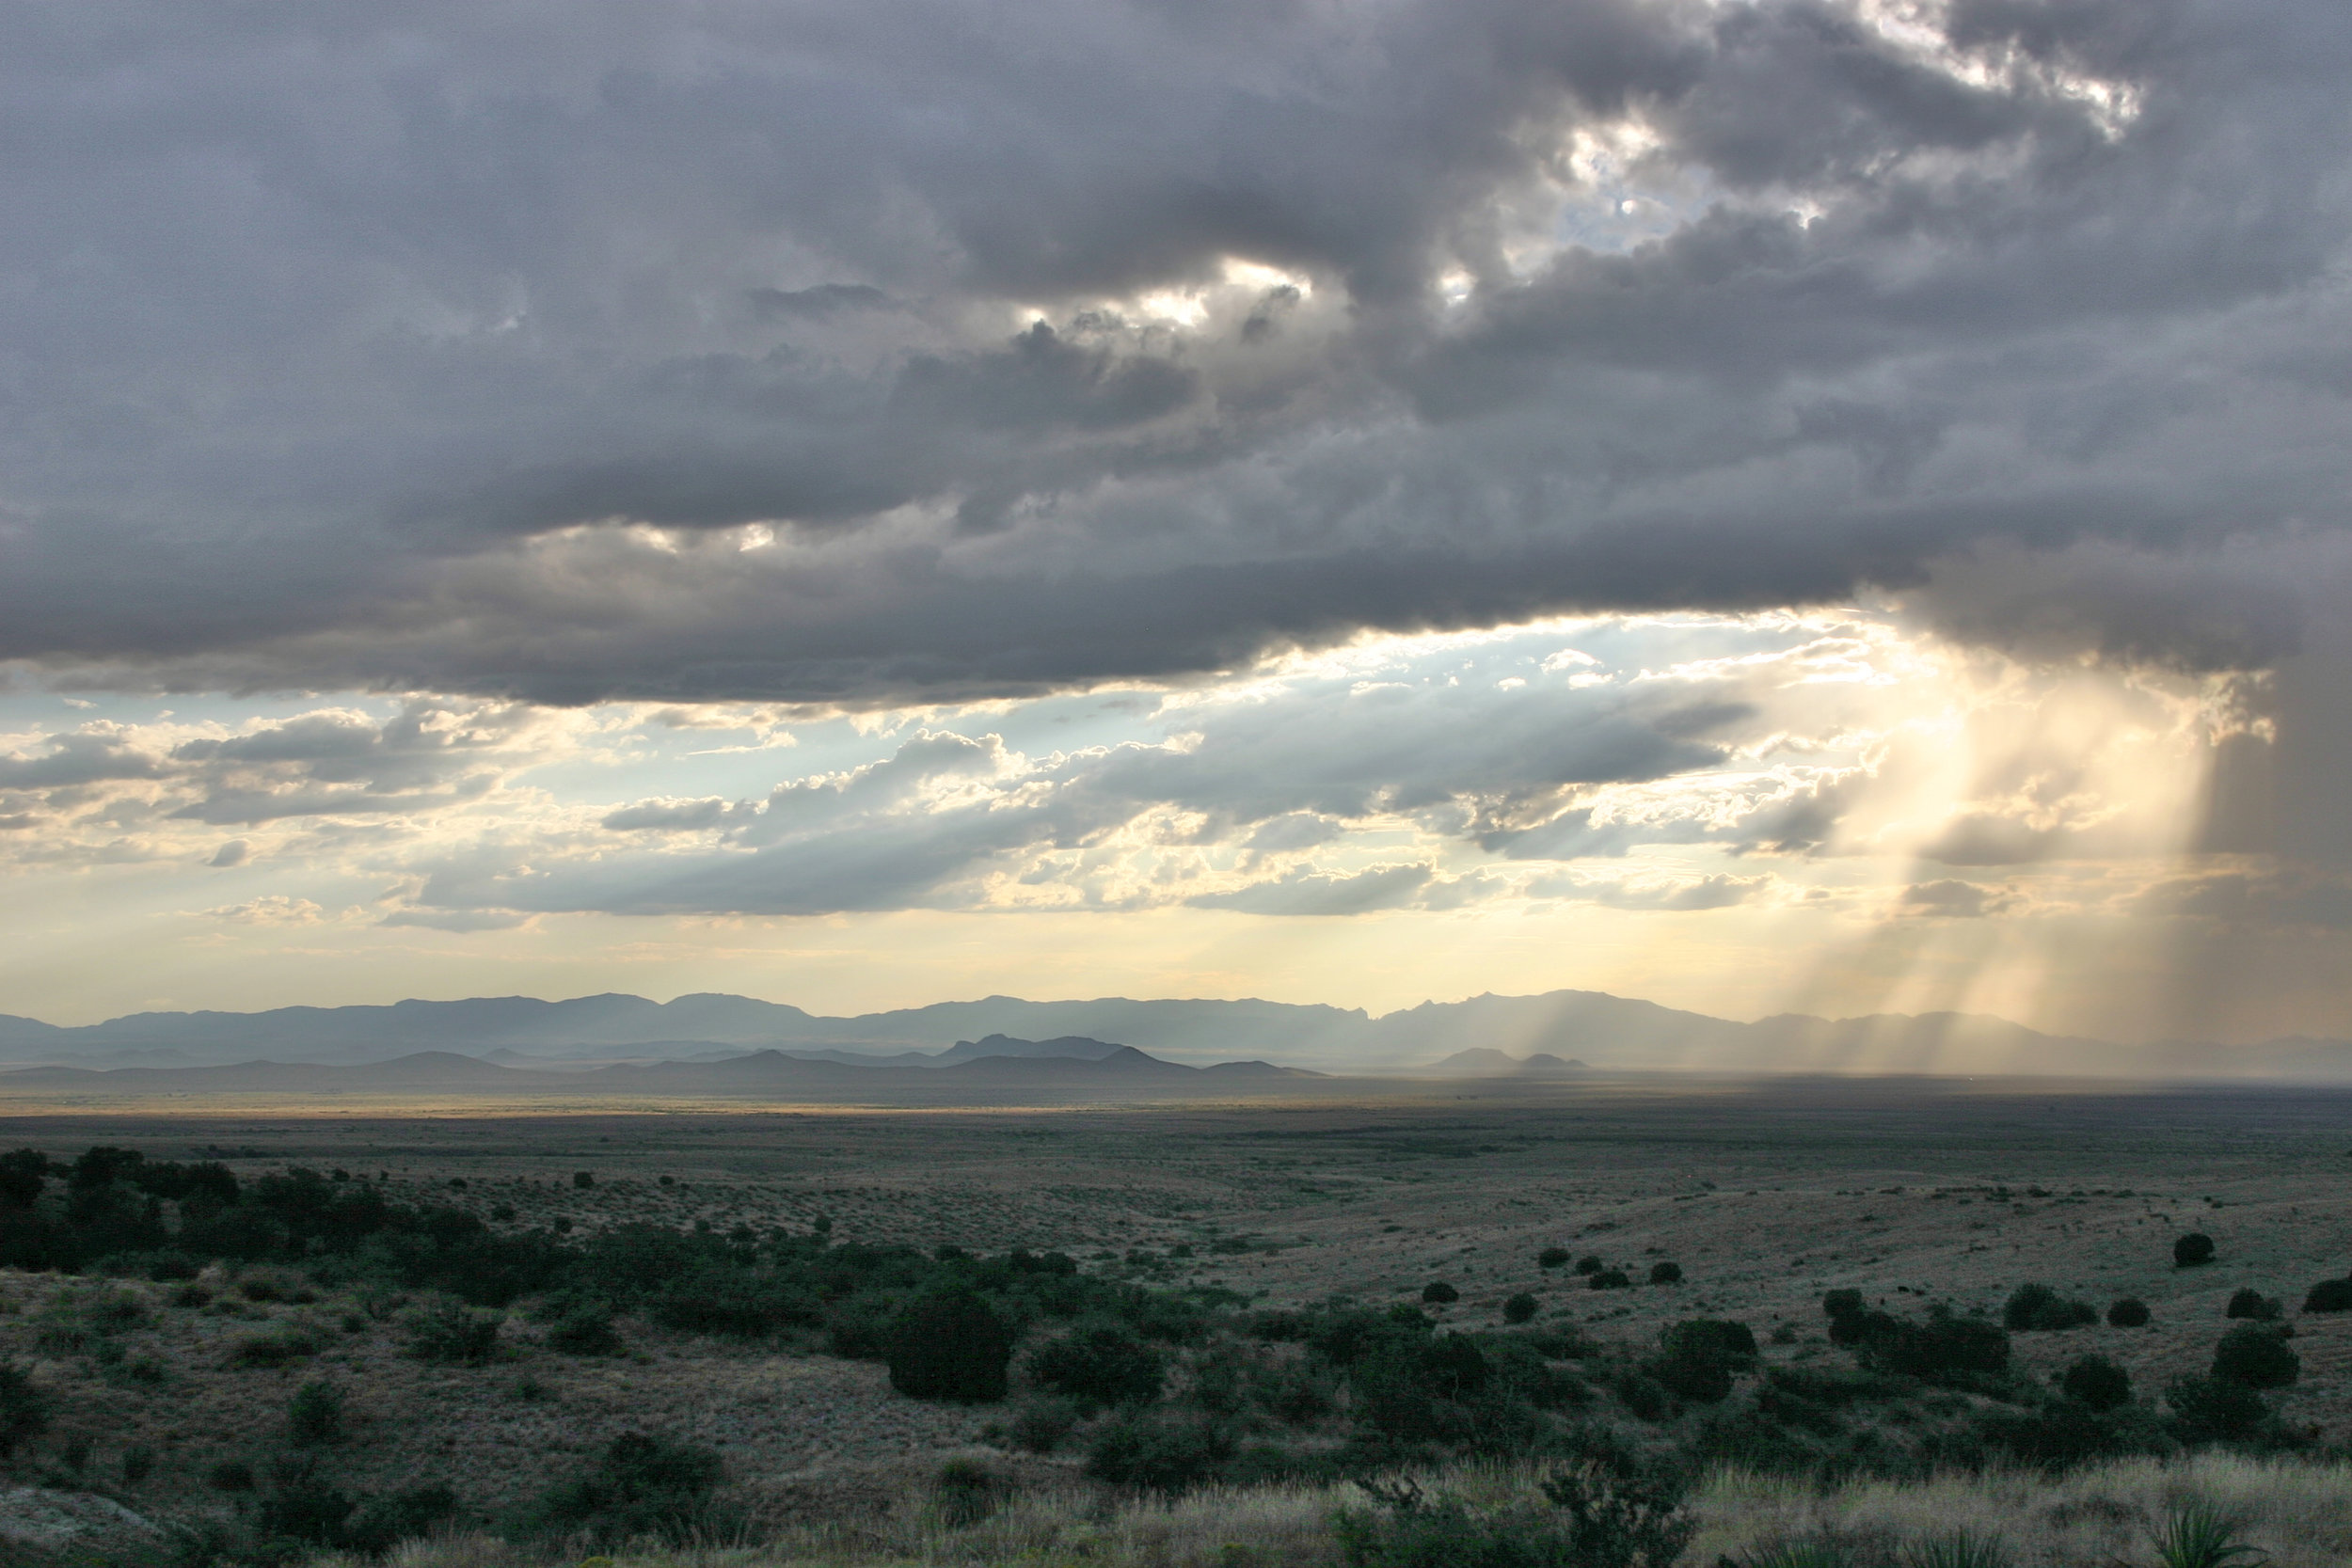 VIEW ACROSS RIGGS FAMILY RANCH LAND LOOKING WEST TO THE PAT HILLS AND DRAGOON MOUNTAINS FROM THE FOOTHILLS OF THE CHIRICAHUA MOUNTAINS